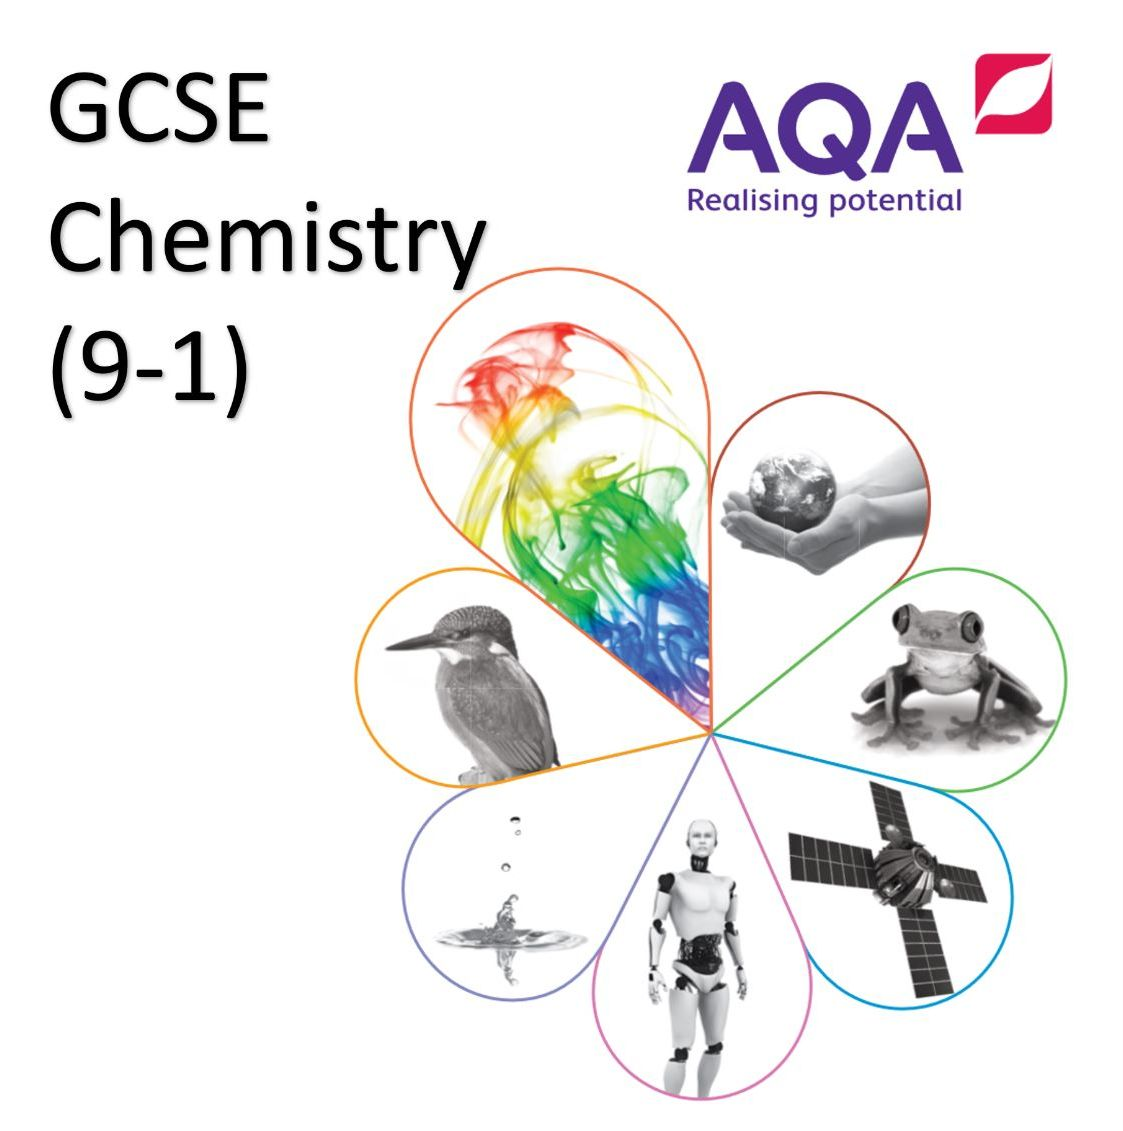 AQA GCSE Chemistry (9-1) Paper 1 Double and Triple Science Revision Summary Sheets